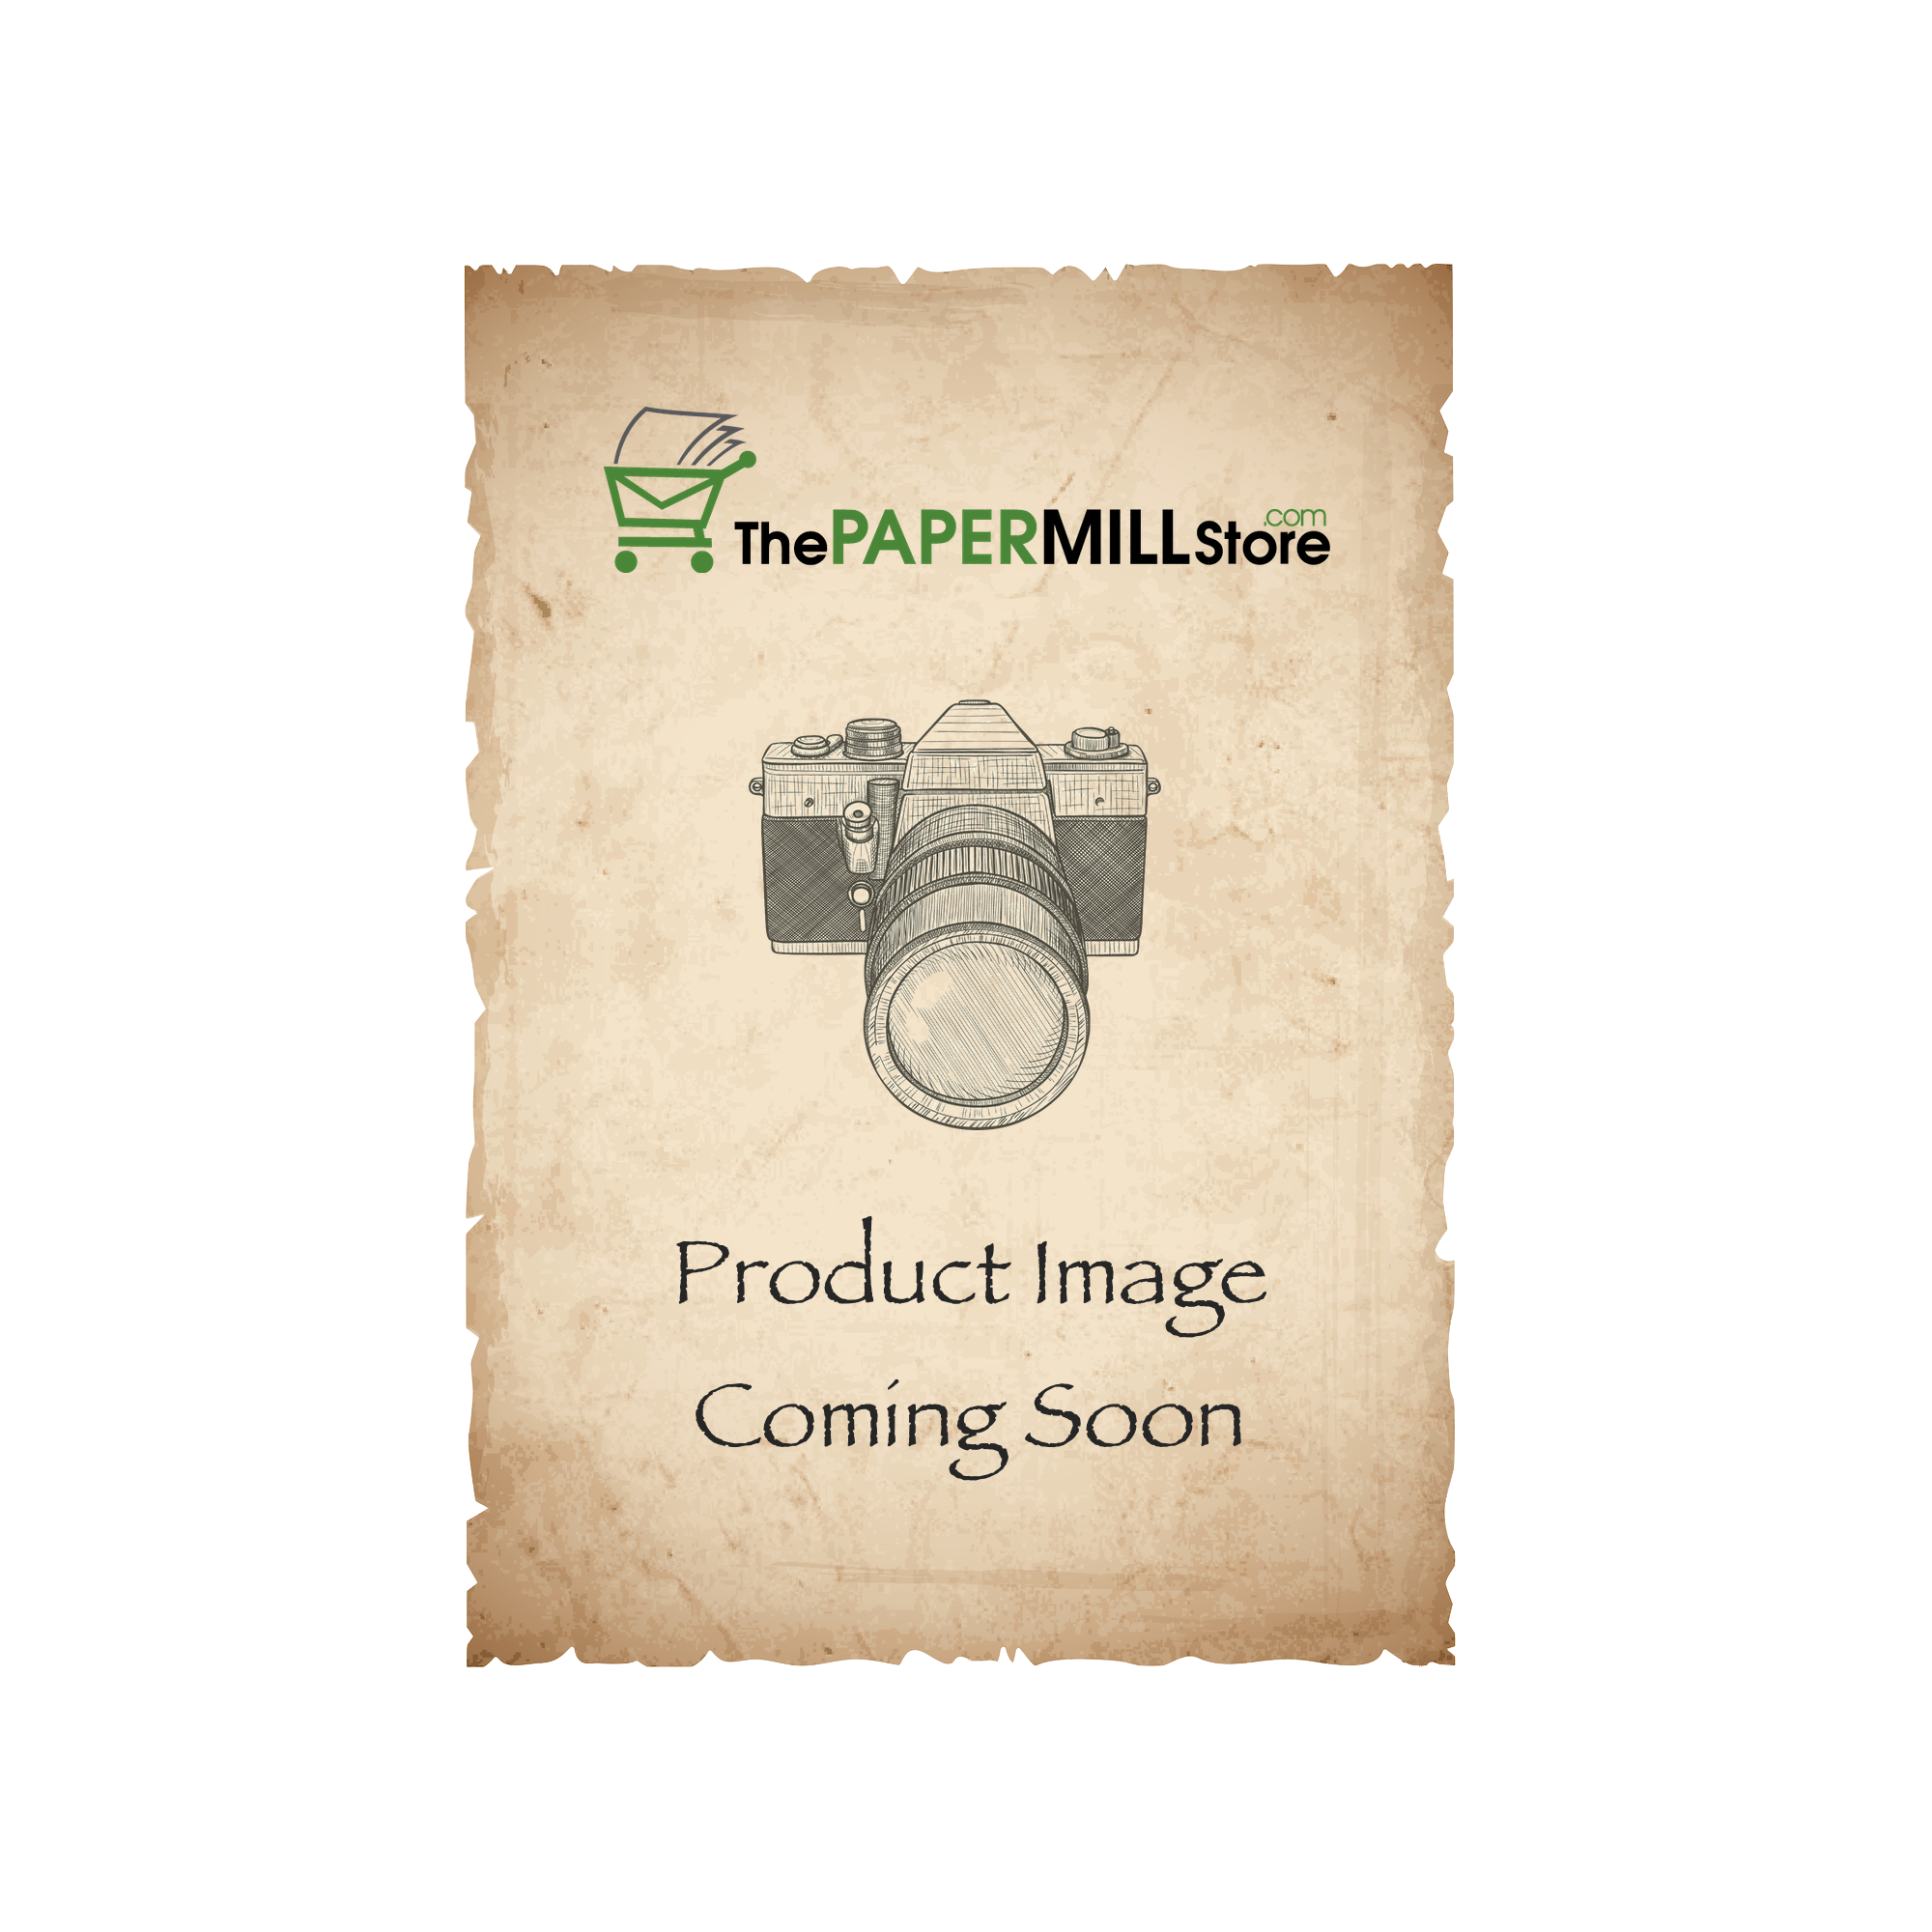 Loop Inxwell i-Tone Eco Cream Paper - 18 x 12 in 110 lb Cover DT Vellum  100% Recycled 250 per Package